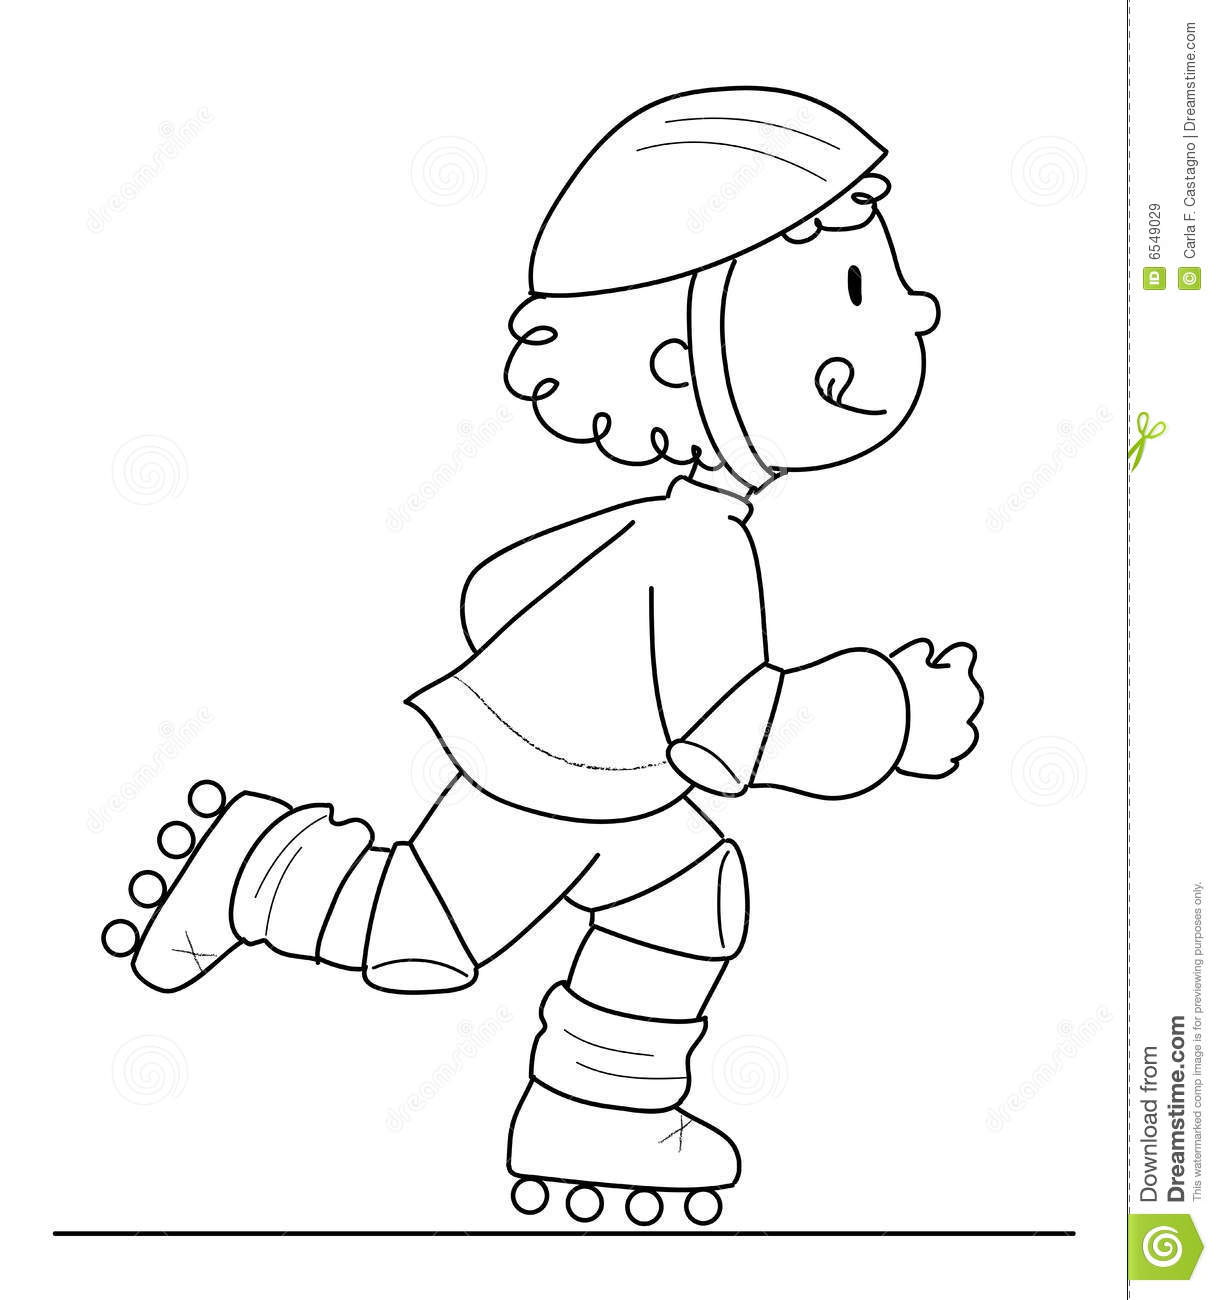 skater boy royalty free stock images image 6549029 free nativity clipart black and white outline free clipart nativity scene black & white